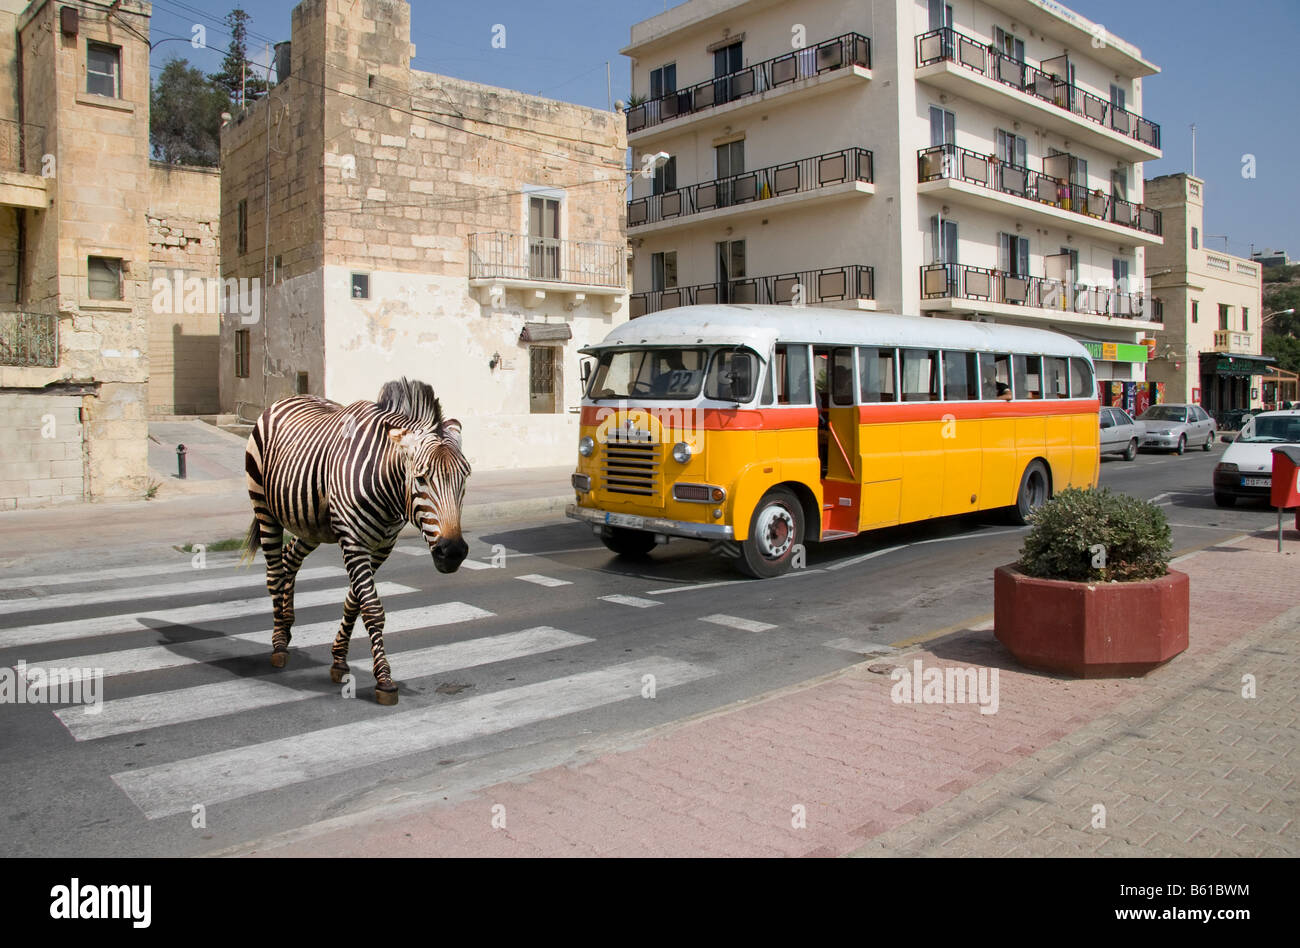 A Zebra crossing, a Zebra Crossing ! Stock Photo